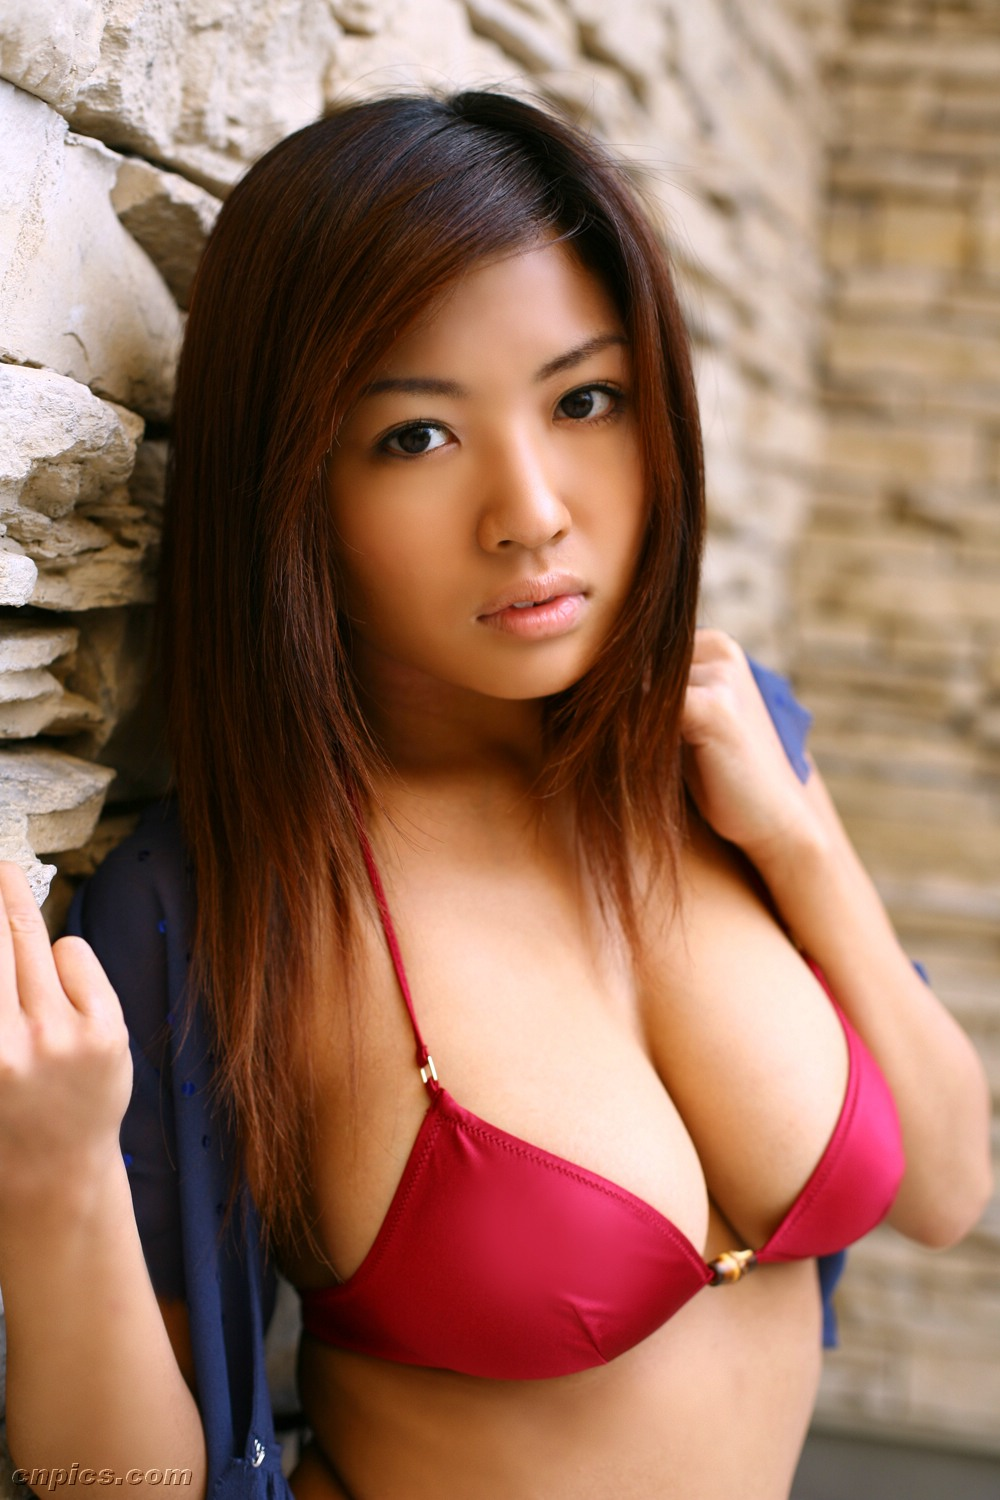 AGREE 100 asian babe model flexi she